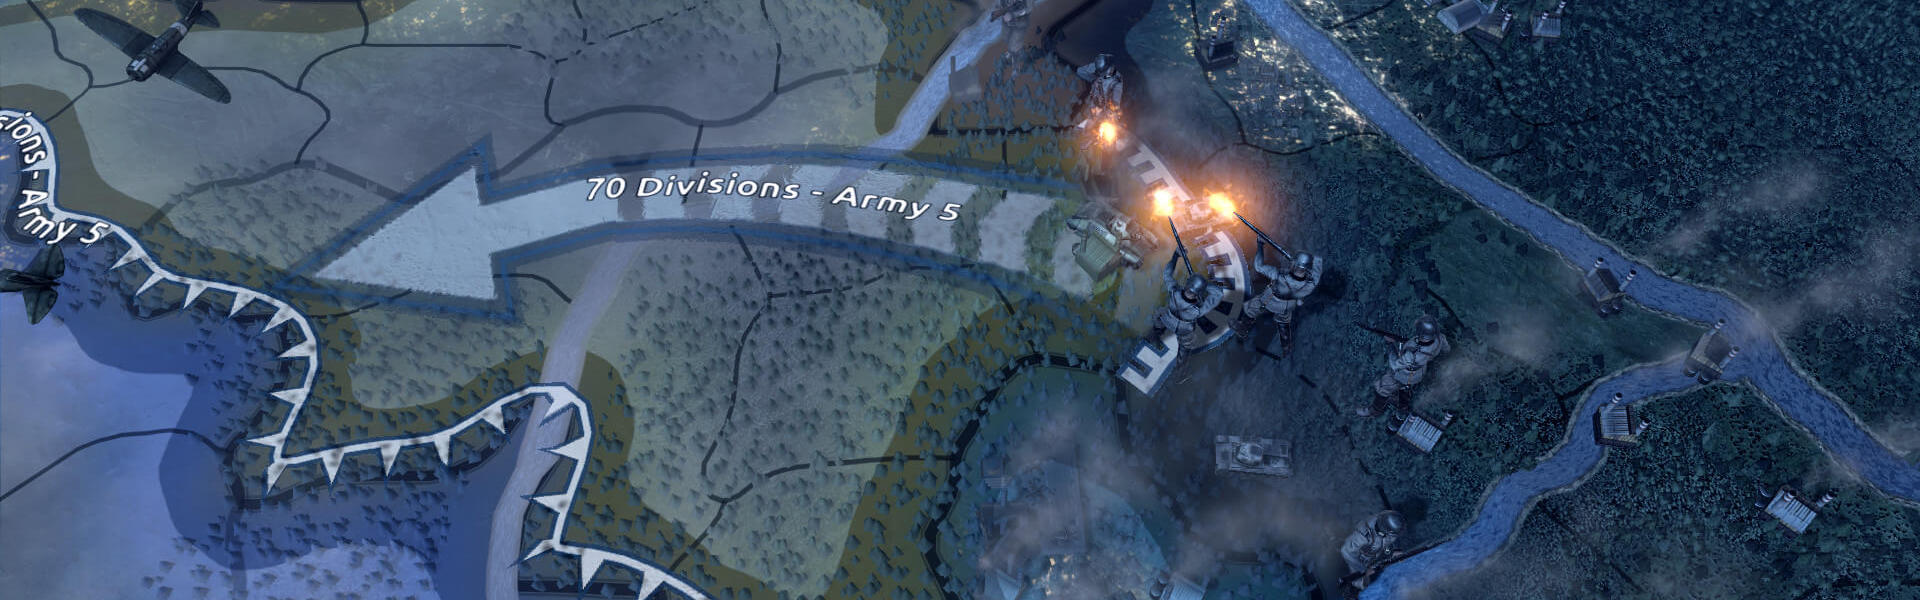 Hearts of Iron IV: Waking the Tiger (DLC) Steam Key GLOBAL